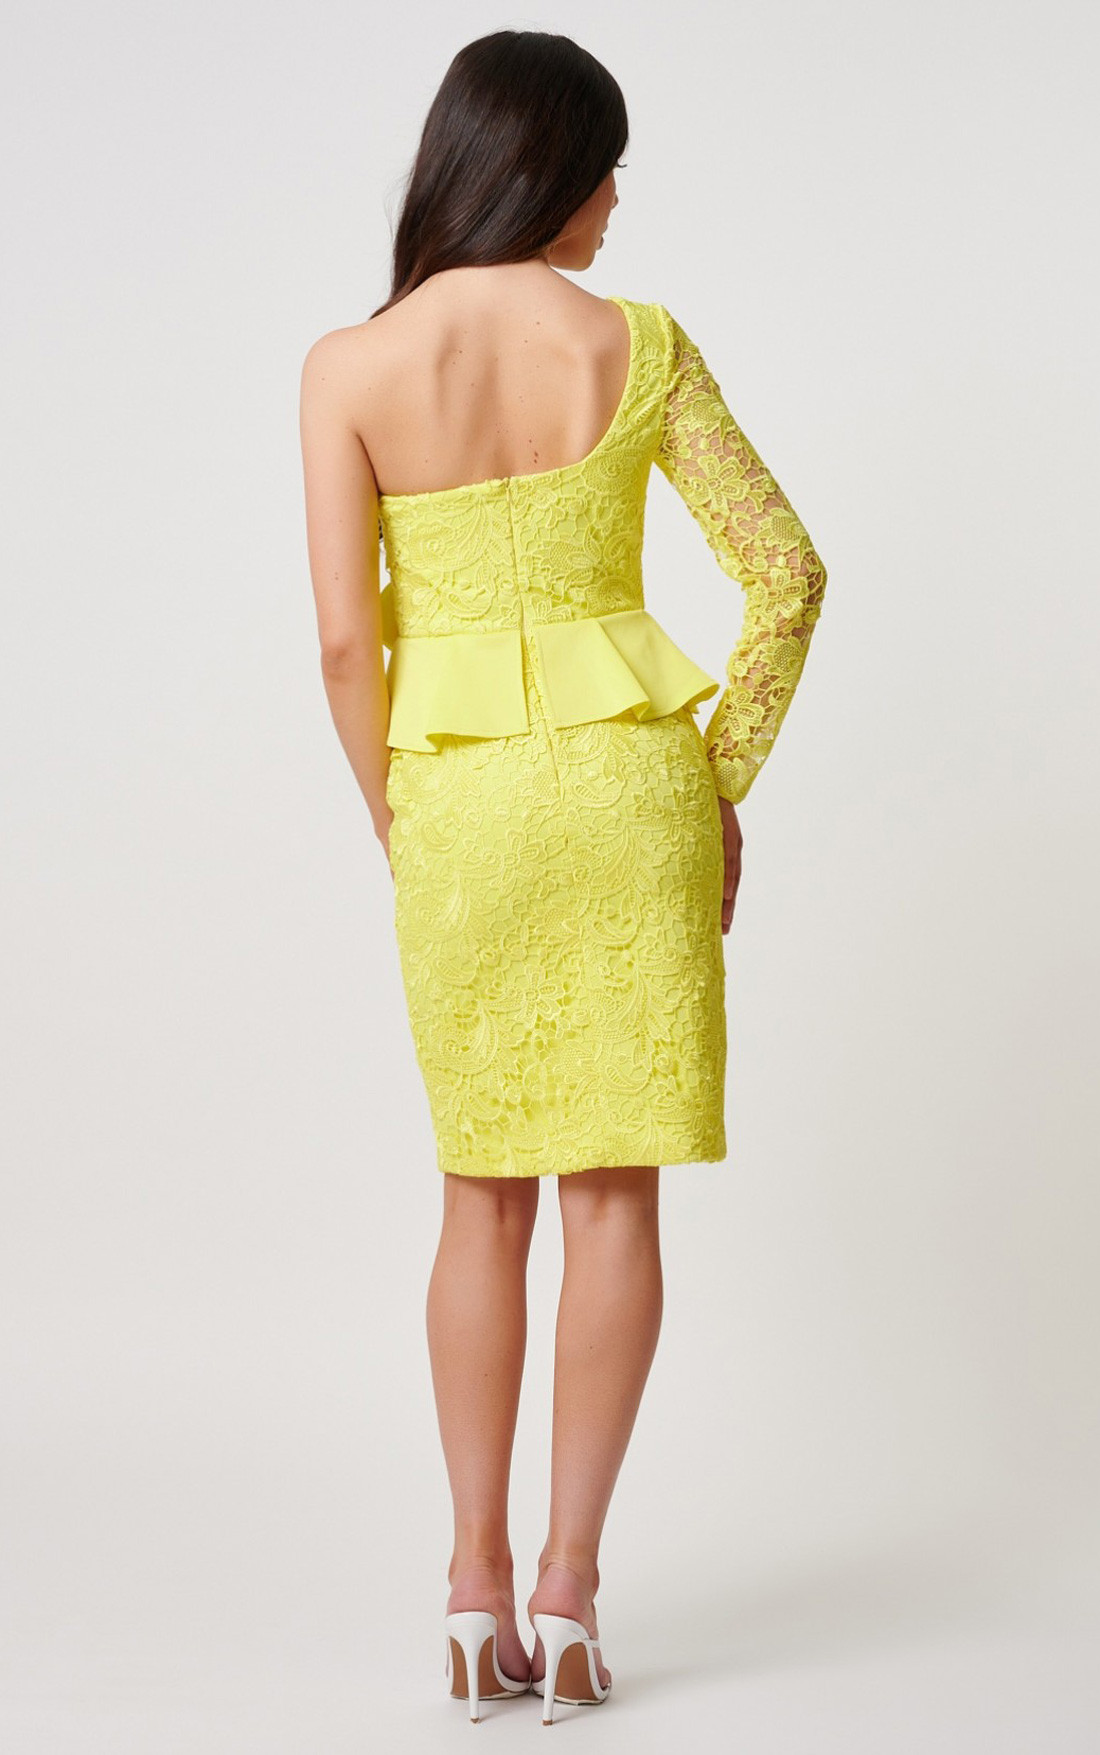 Forever Unique - Bronwyn Yellow One Shoulder Peplum Lace Dress (MN201914)